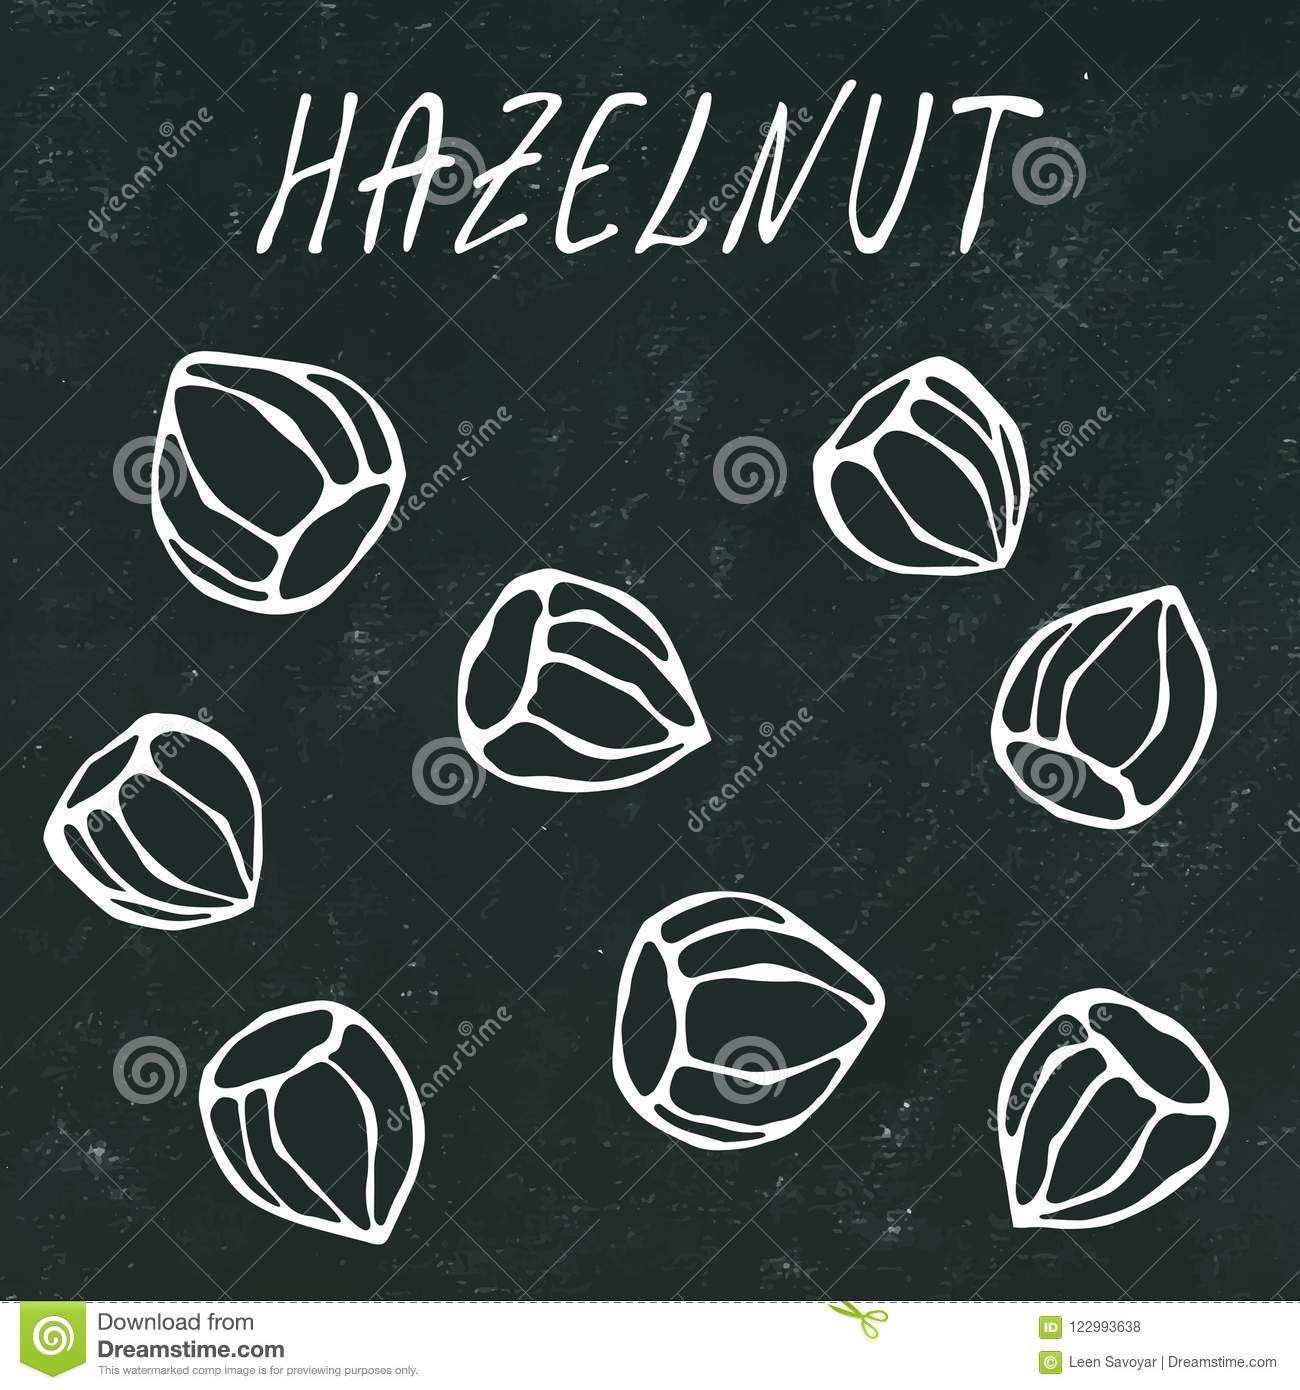 Black Board. Whole Unpeeled Hazelnuts in Shell. Healthy Snack. Autumn or Fall Harvest Collection. Realistic Hand Drawn High Qualit